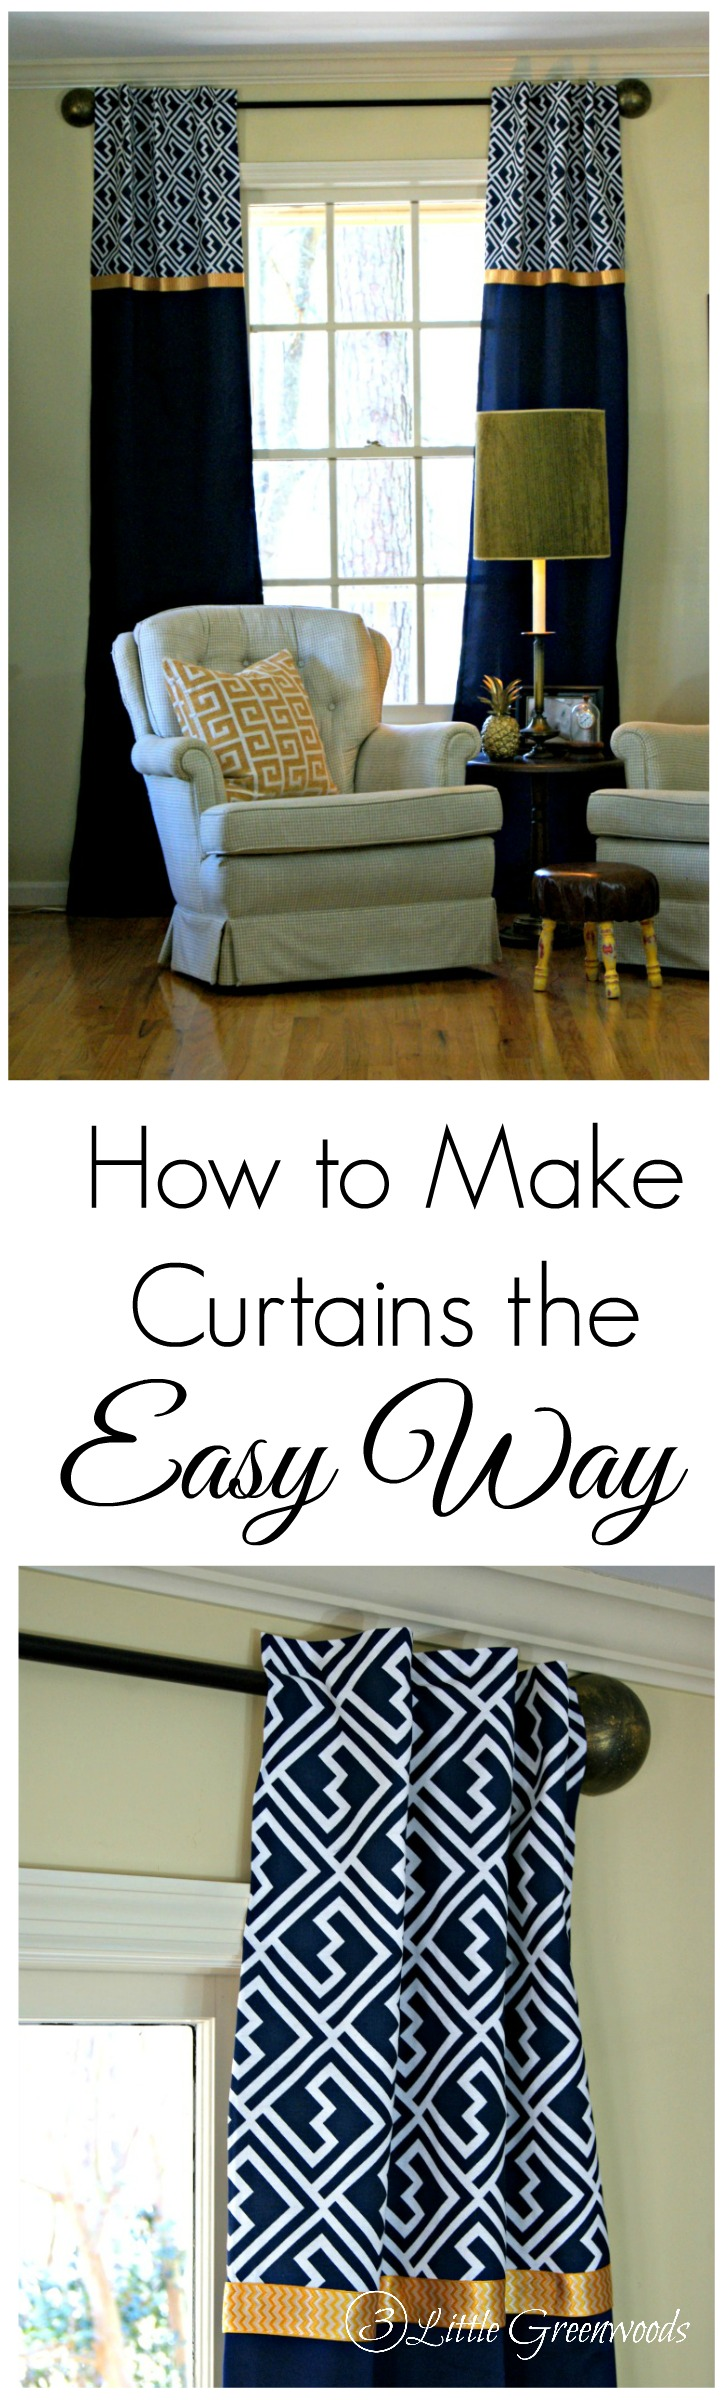 Learn how to make curtains ~ The Easy No-Sew Way! Check out this simple tutorial! Following this simple tutorial to make curtains that are totally customizable to your home decor! 3 Little Greenwoods